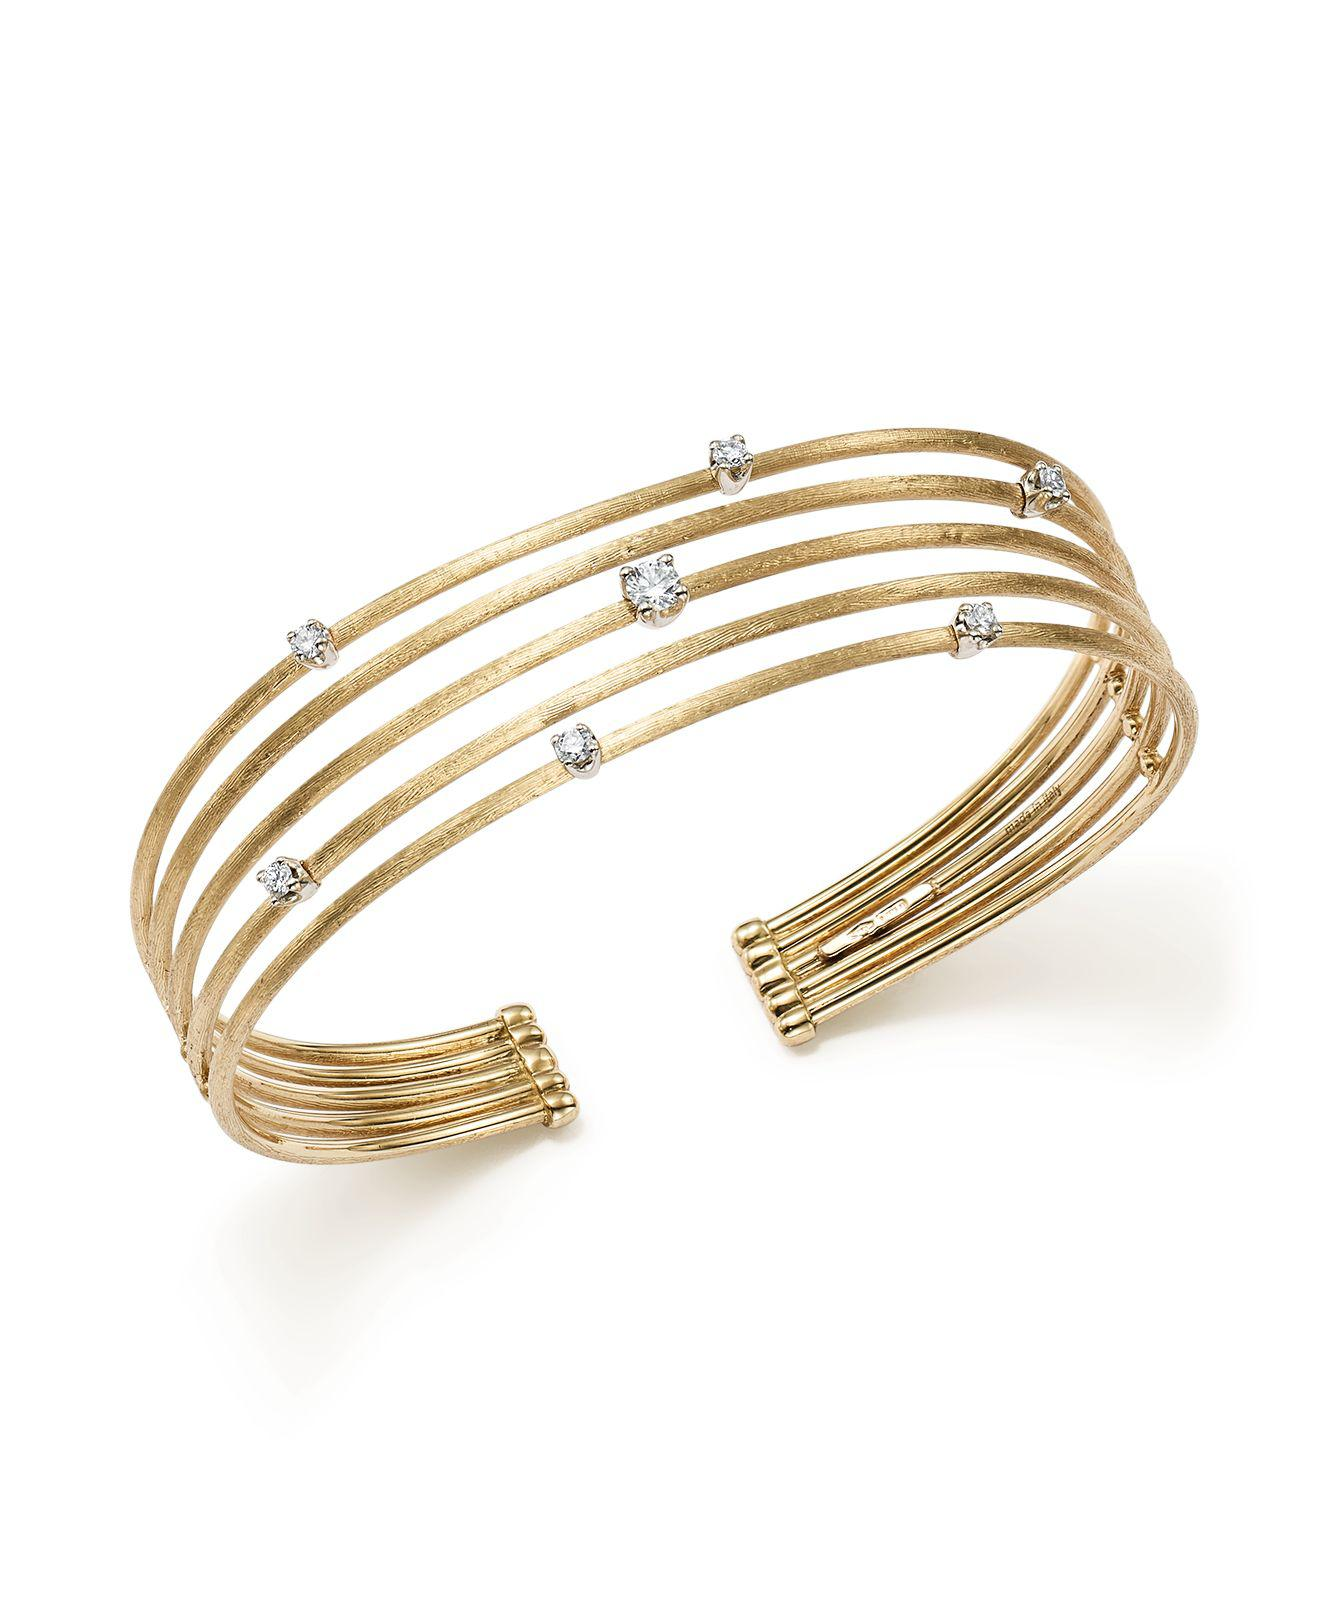 marrakech diamond marco aurum bicego gold amp bracelet